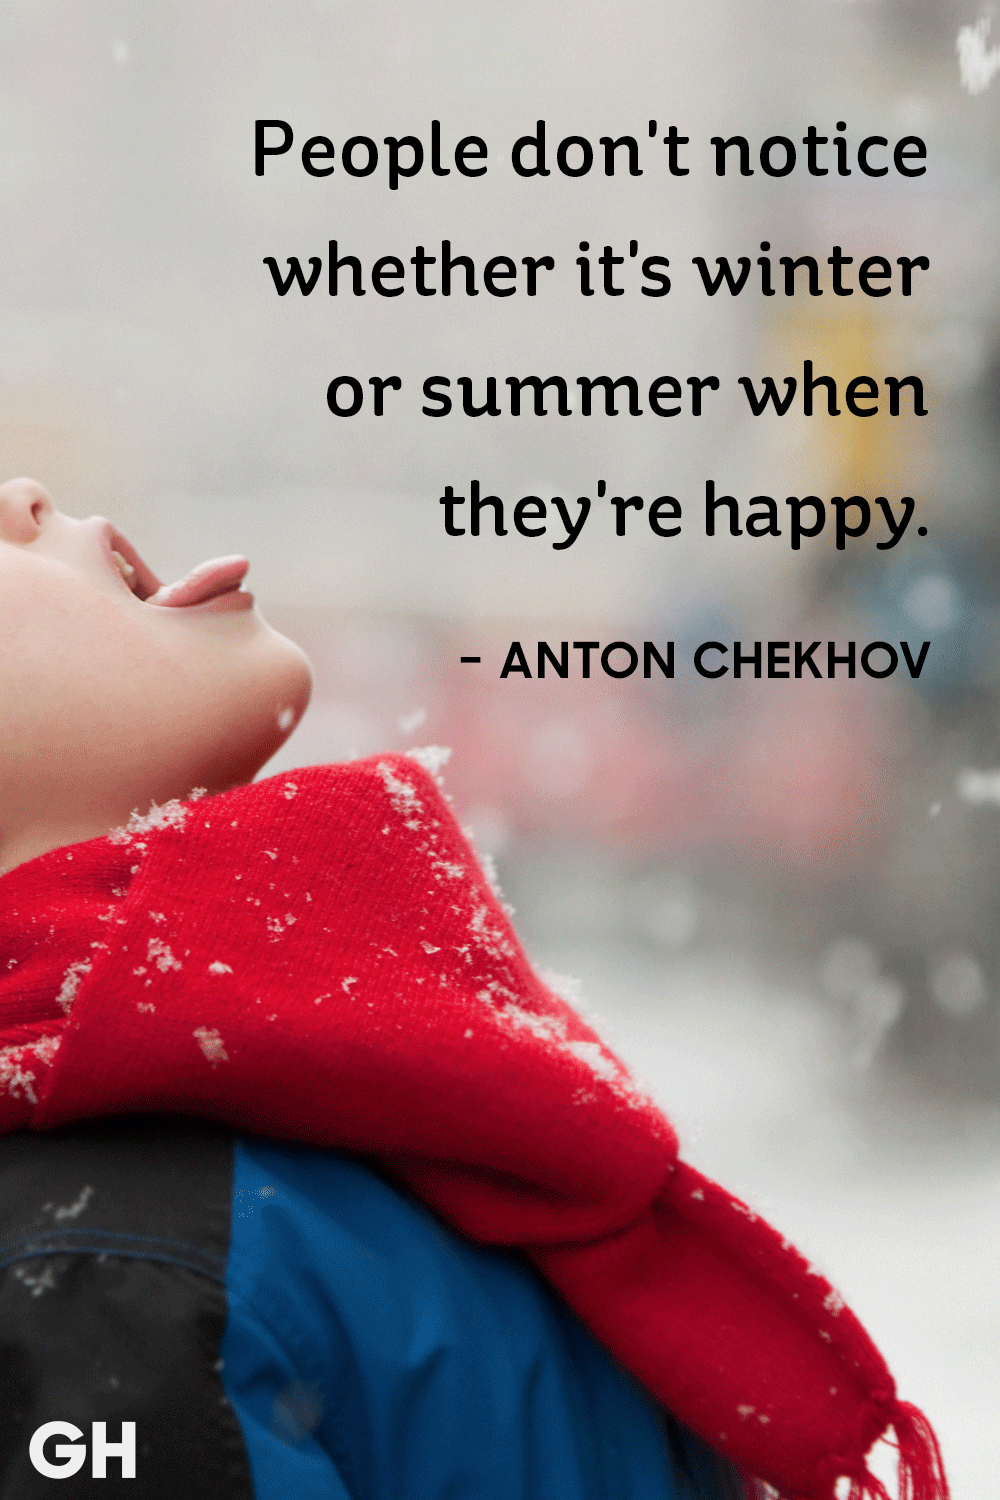 Winter Quotes 15 Best Winter Quotes   Short Sayings and Quotes About Winter Winter Quotes